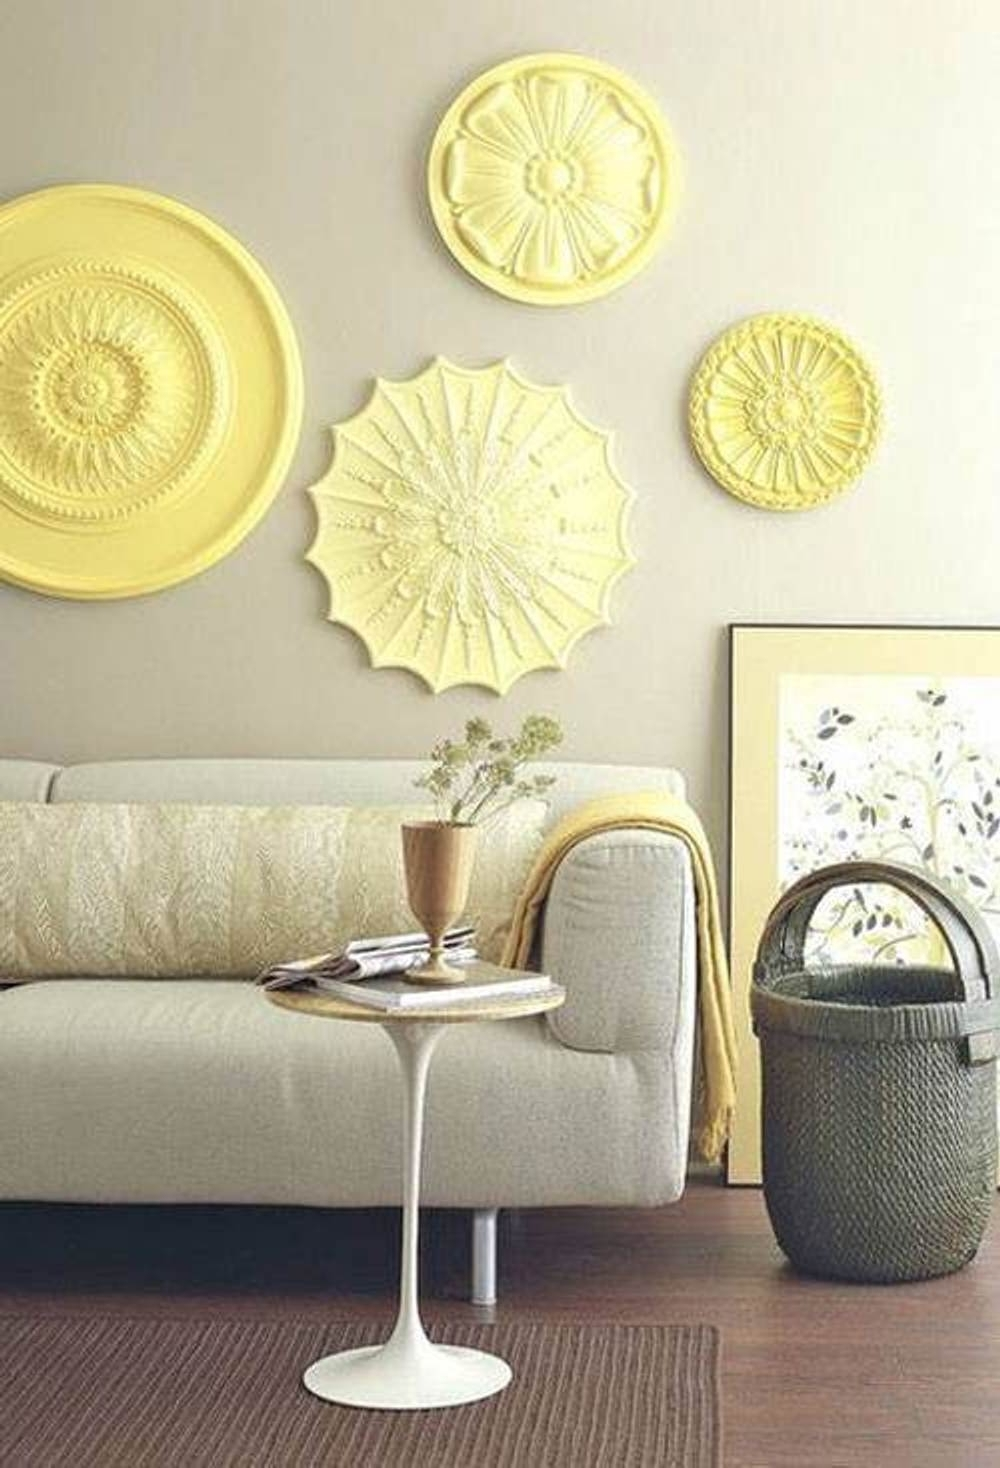 Most Recent Wall Art Ideas For Living Room In Living Room Wall Art Ideas With Regard To Warm (View 15 of 15)